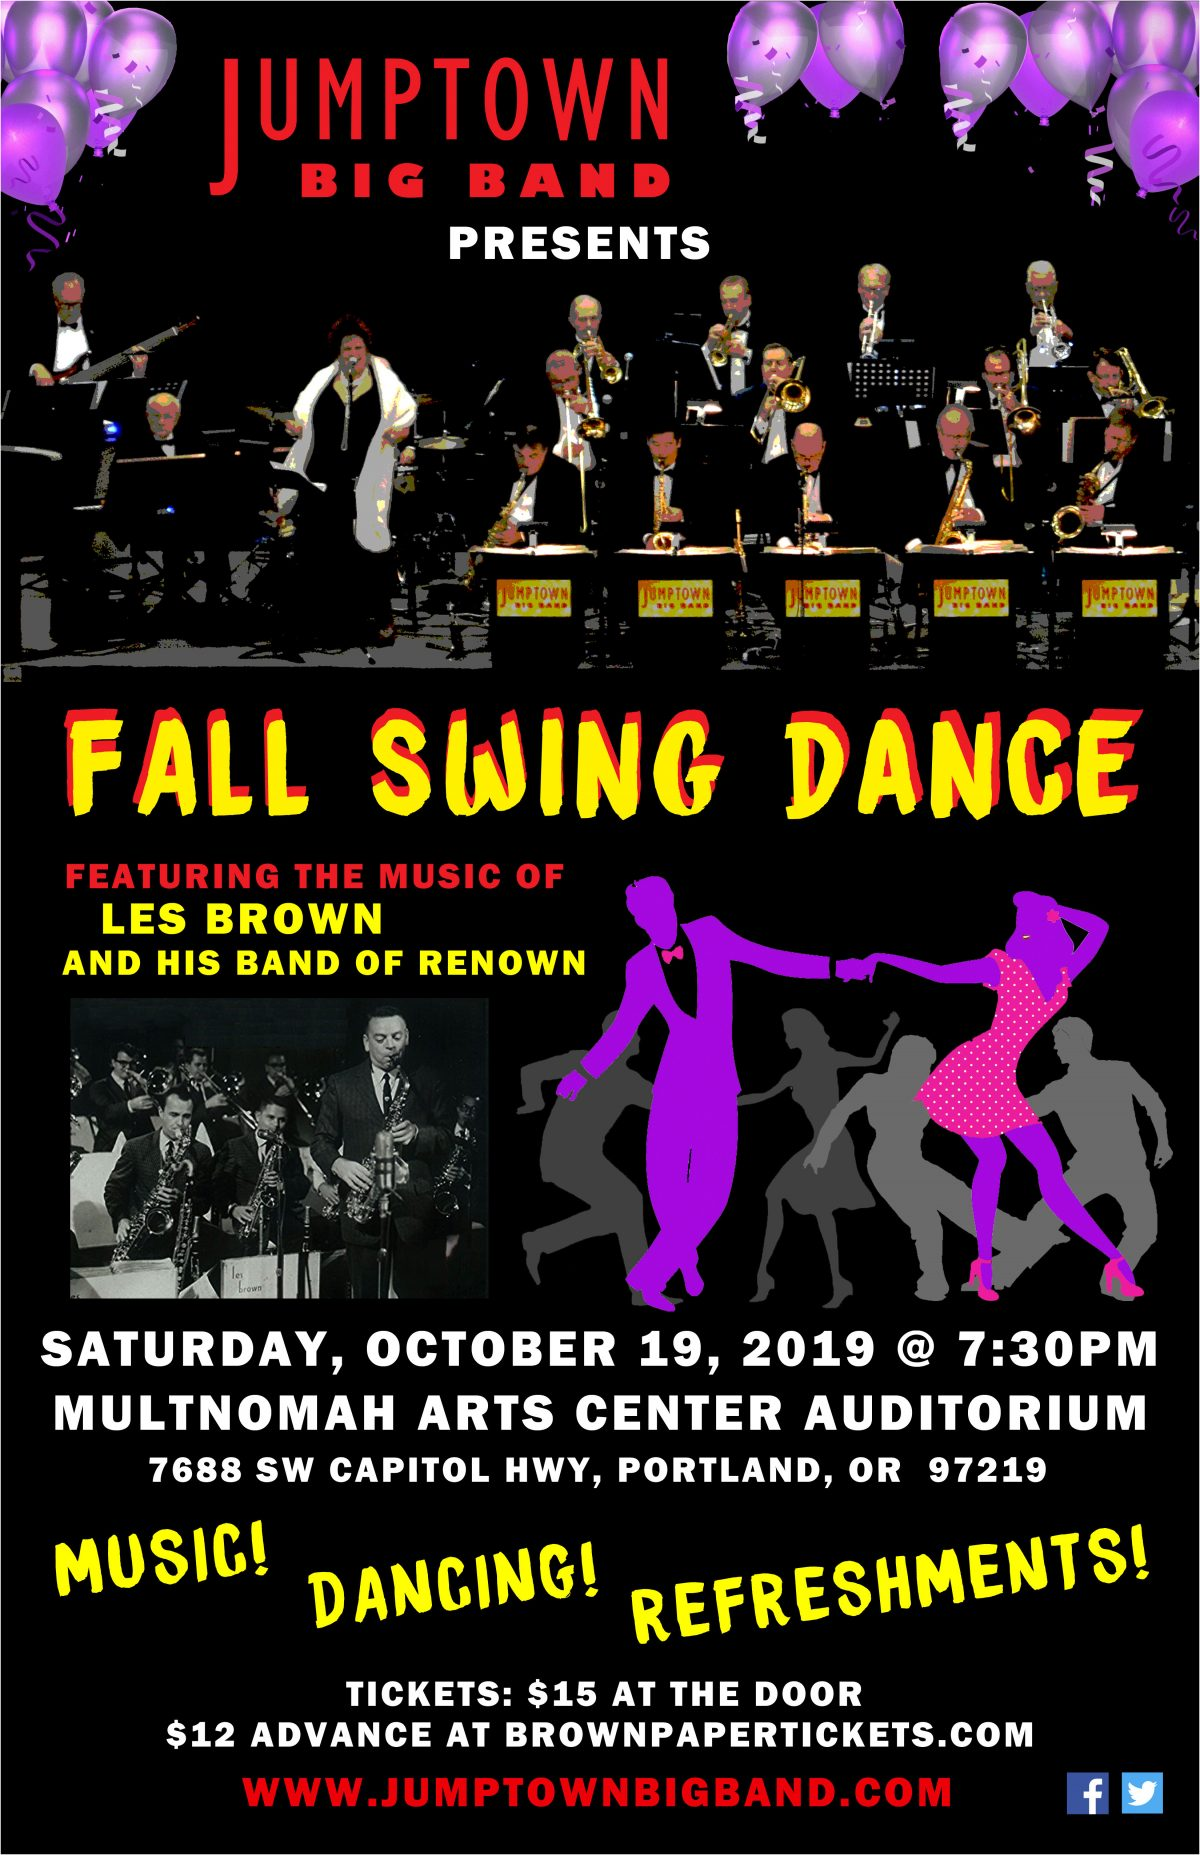 October 19, 2019 – Fall Swing Dance at Multnomah Arts Center